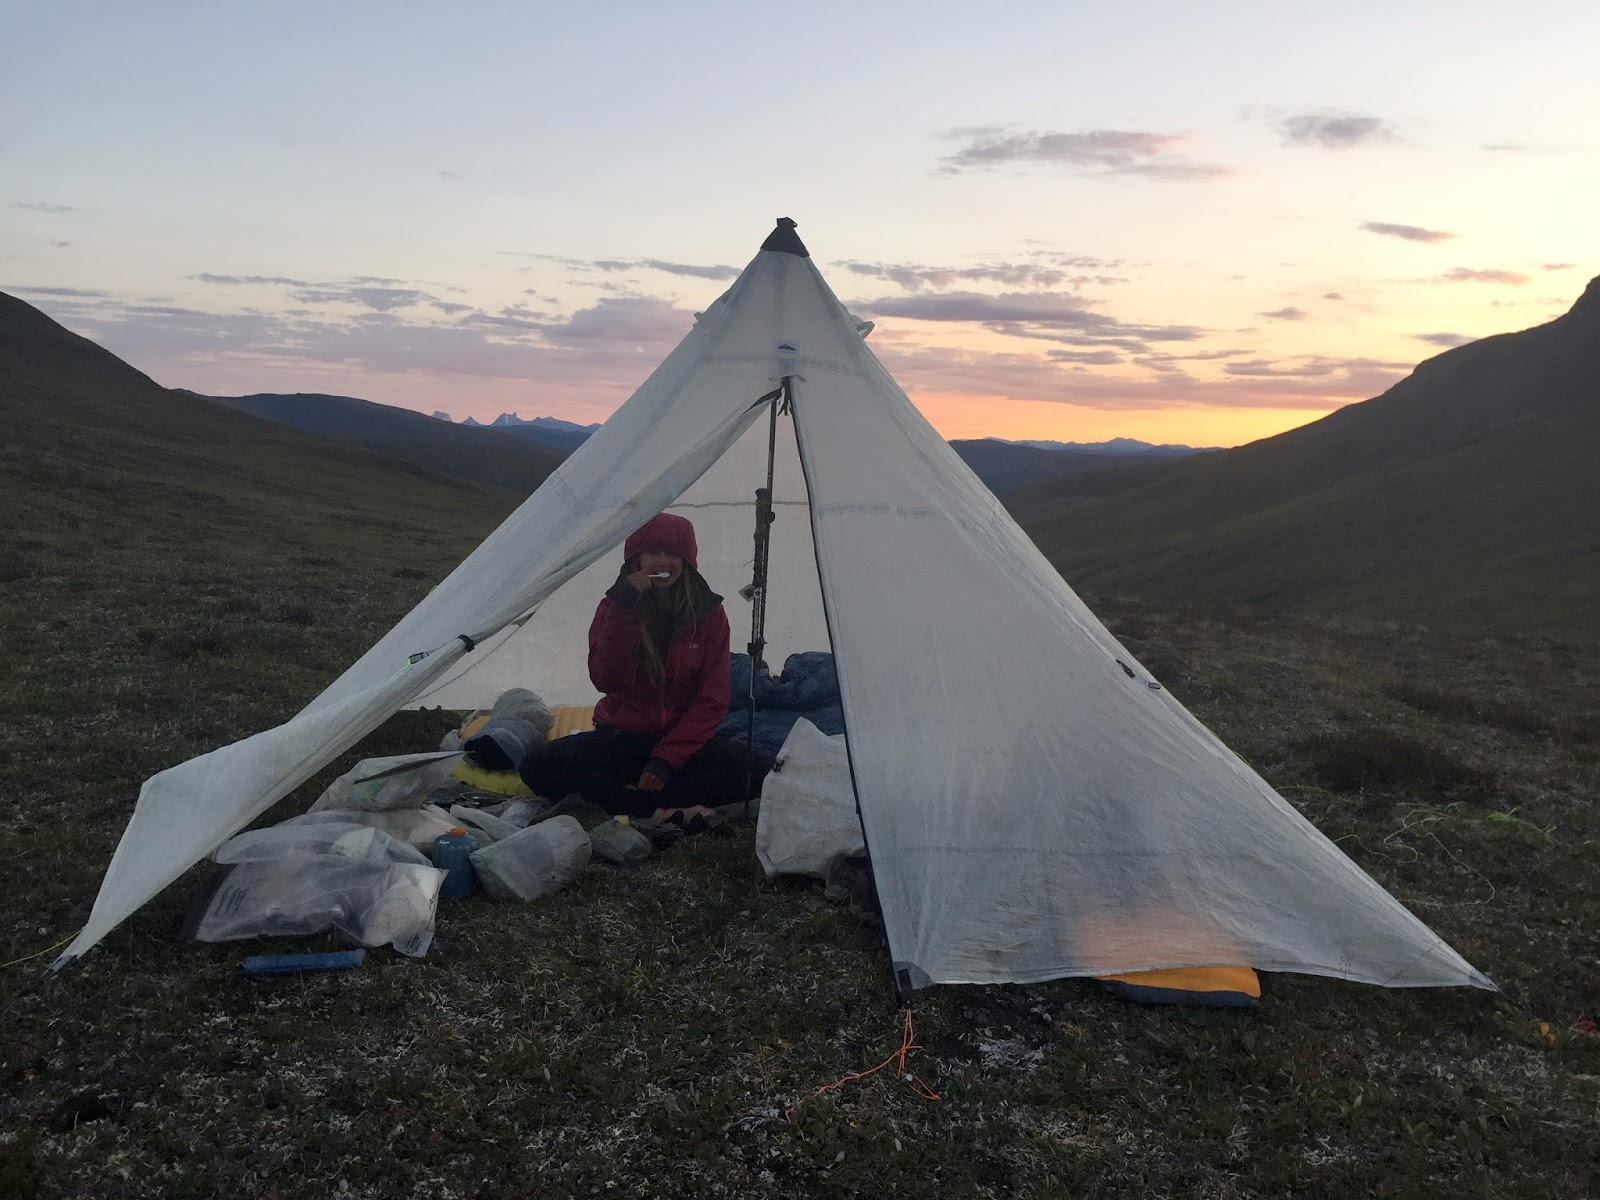 ... Mountain Gear UltaMid 4 is the best all-purpose tent on the planet. Here Sarah Brey brushes her teeth on a beautiful night in the Brooks Range Alaska. & The Best Ultralight Tent Shelter: Hyperlite Mountain Gear UltaMid ...